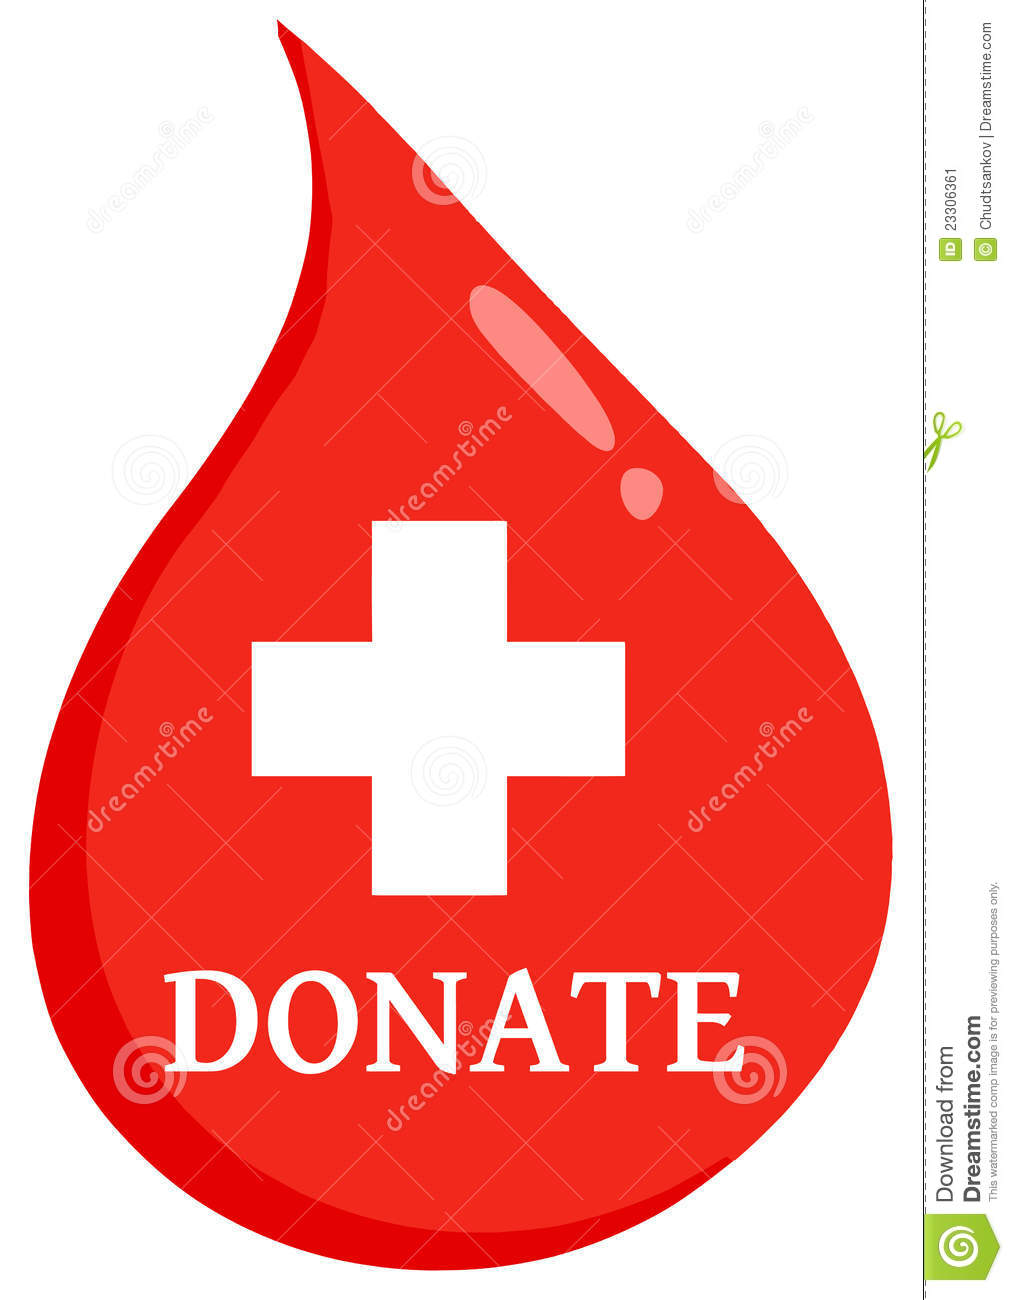 Donate First Aid Blood Drop Stock Image - Image: 23306361